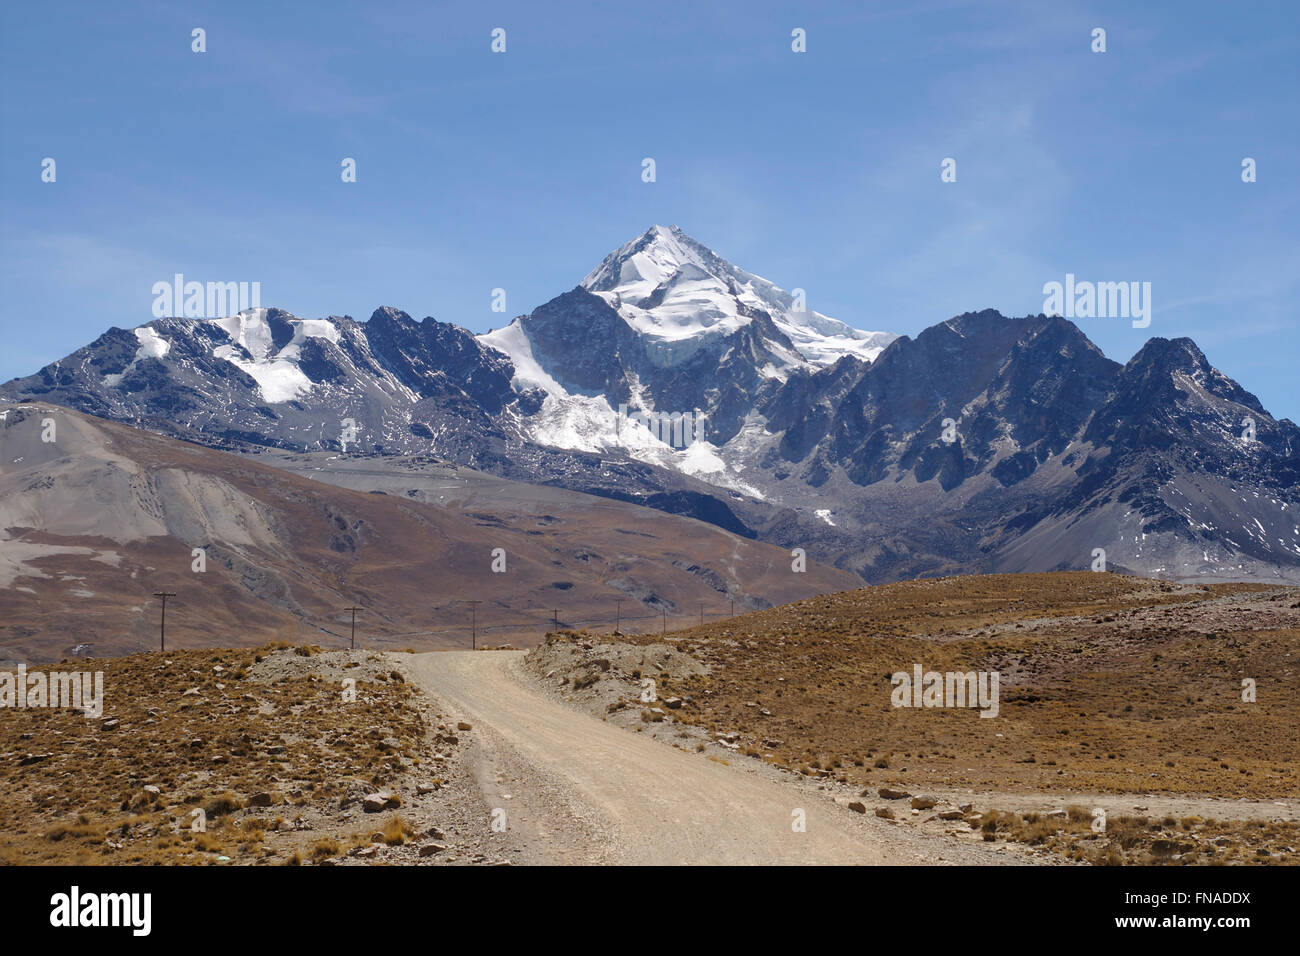 Huayna Potosi in the Cordillera Real, Bolivia - Stock Image